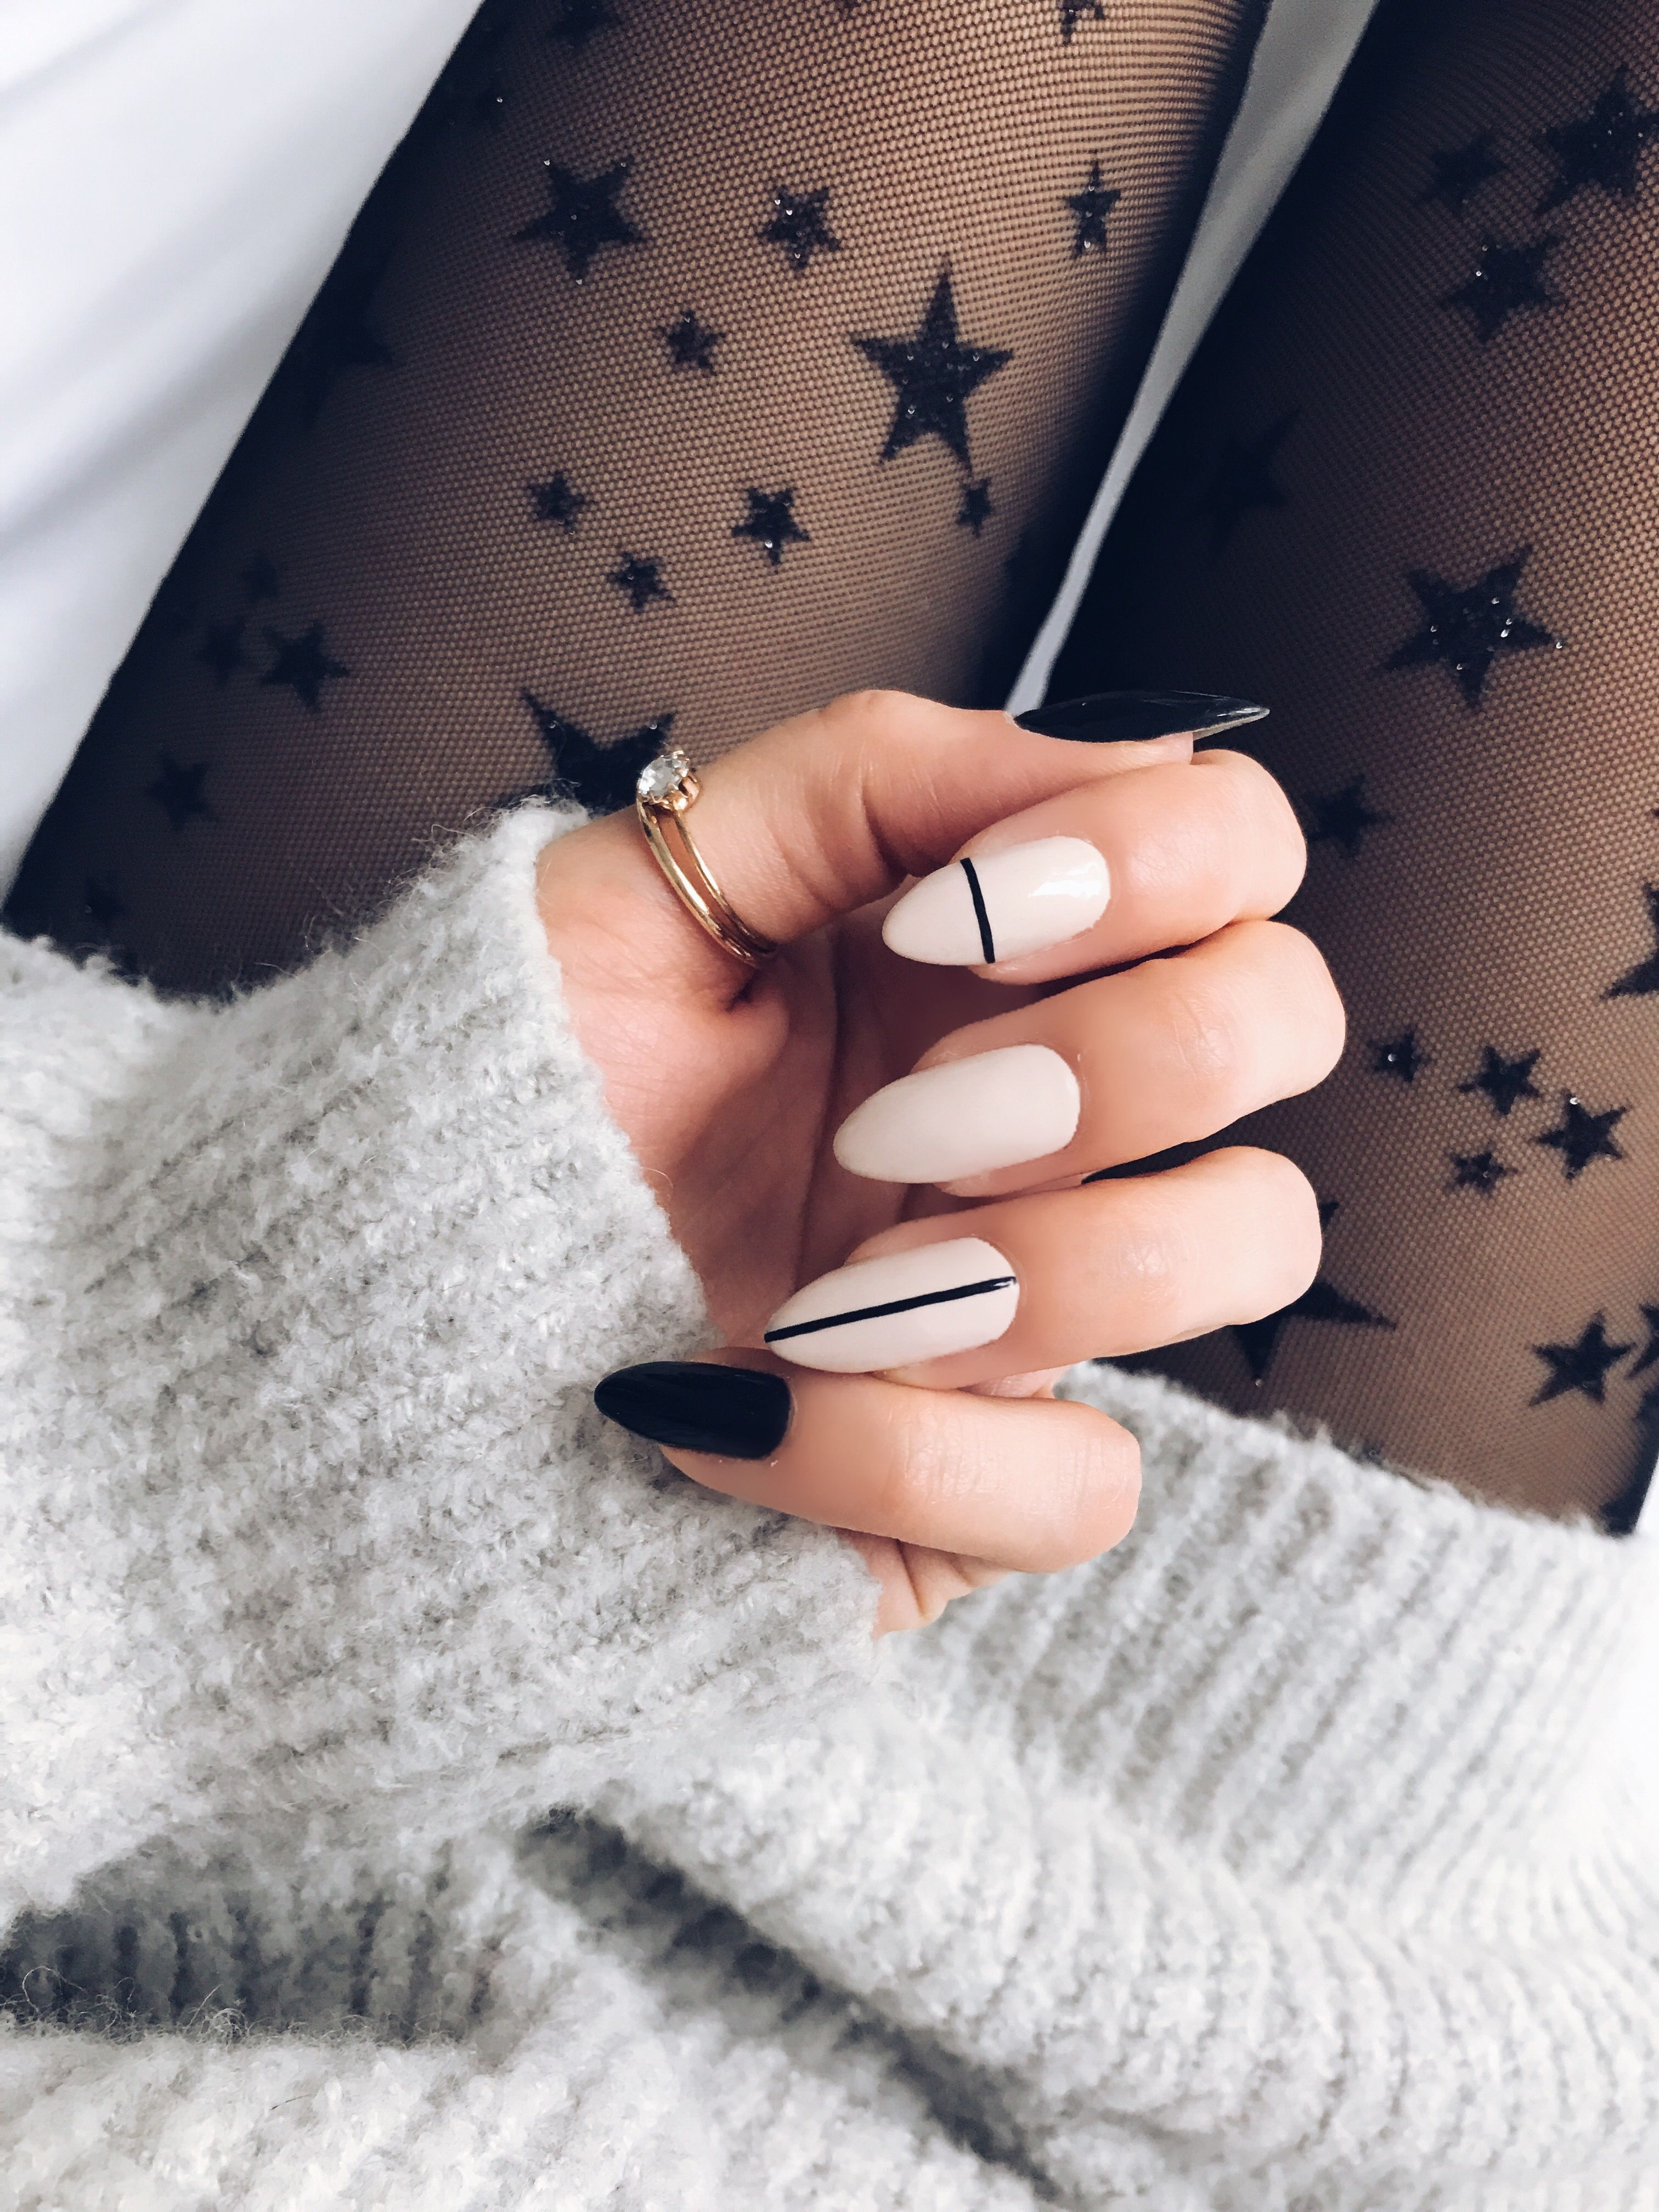 Manicure Inspiration Nailsofinstagram Nails Inspiration